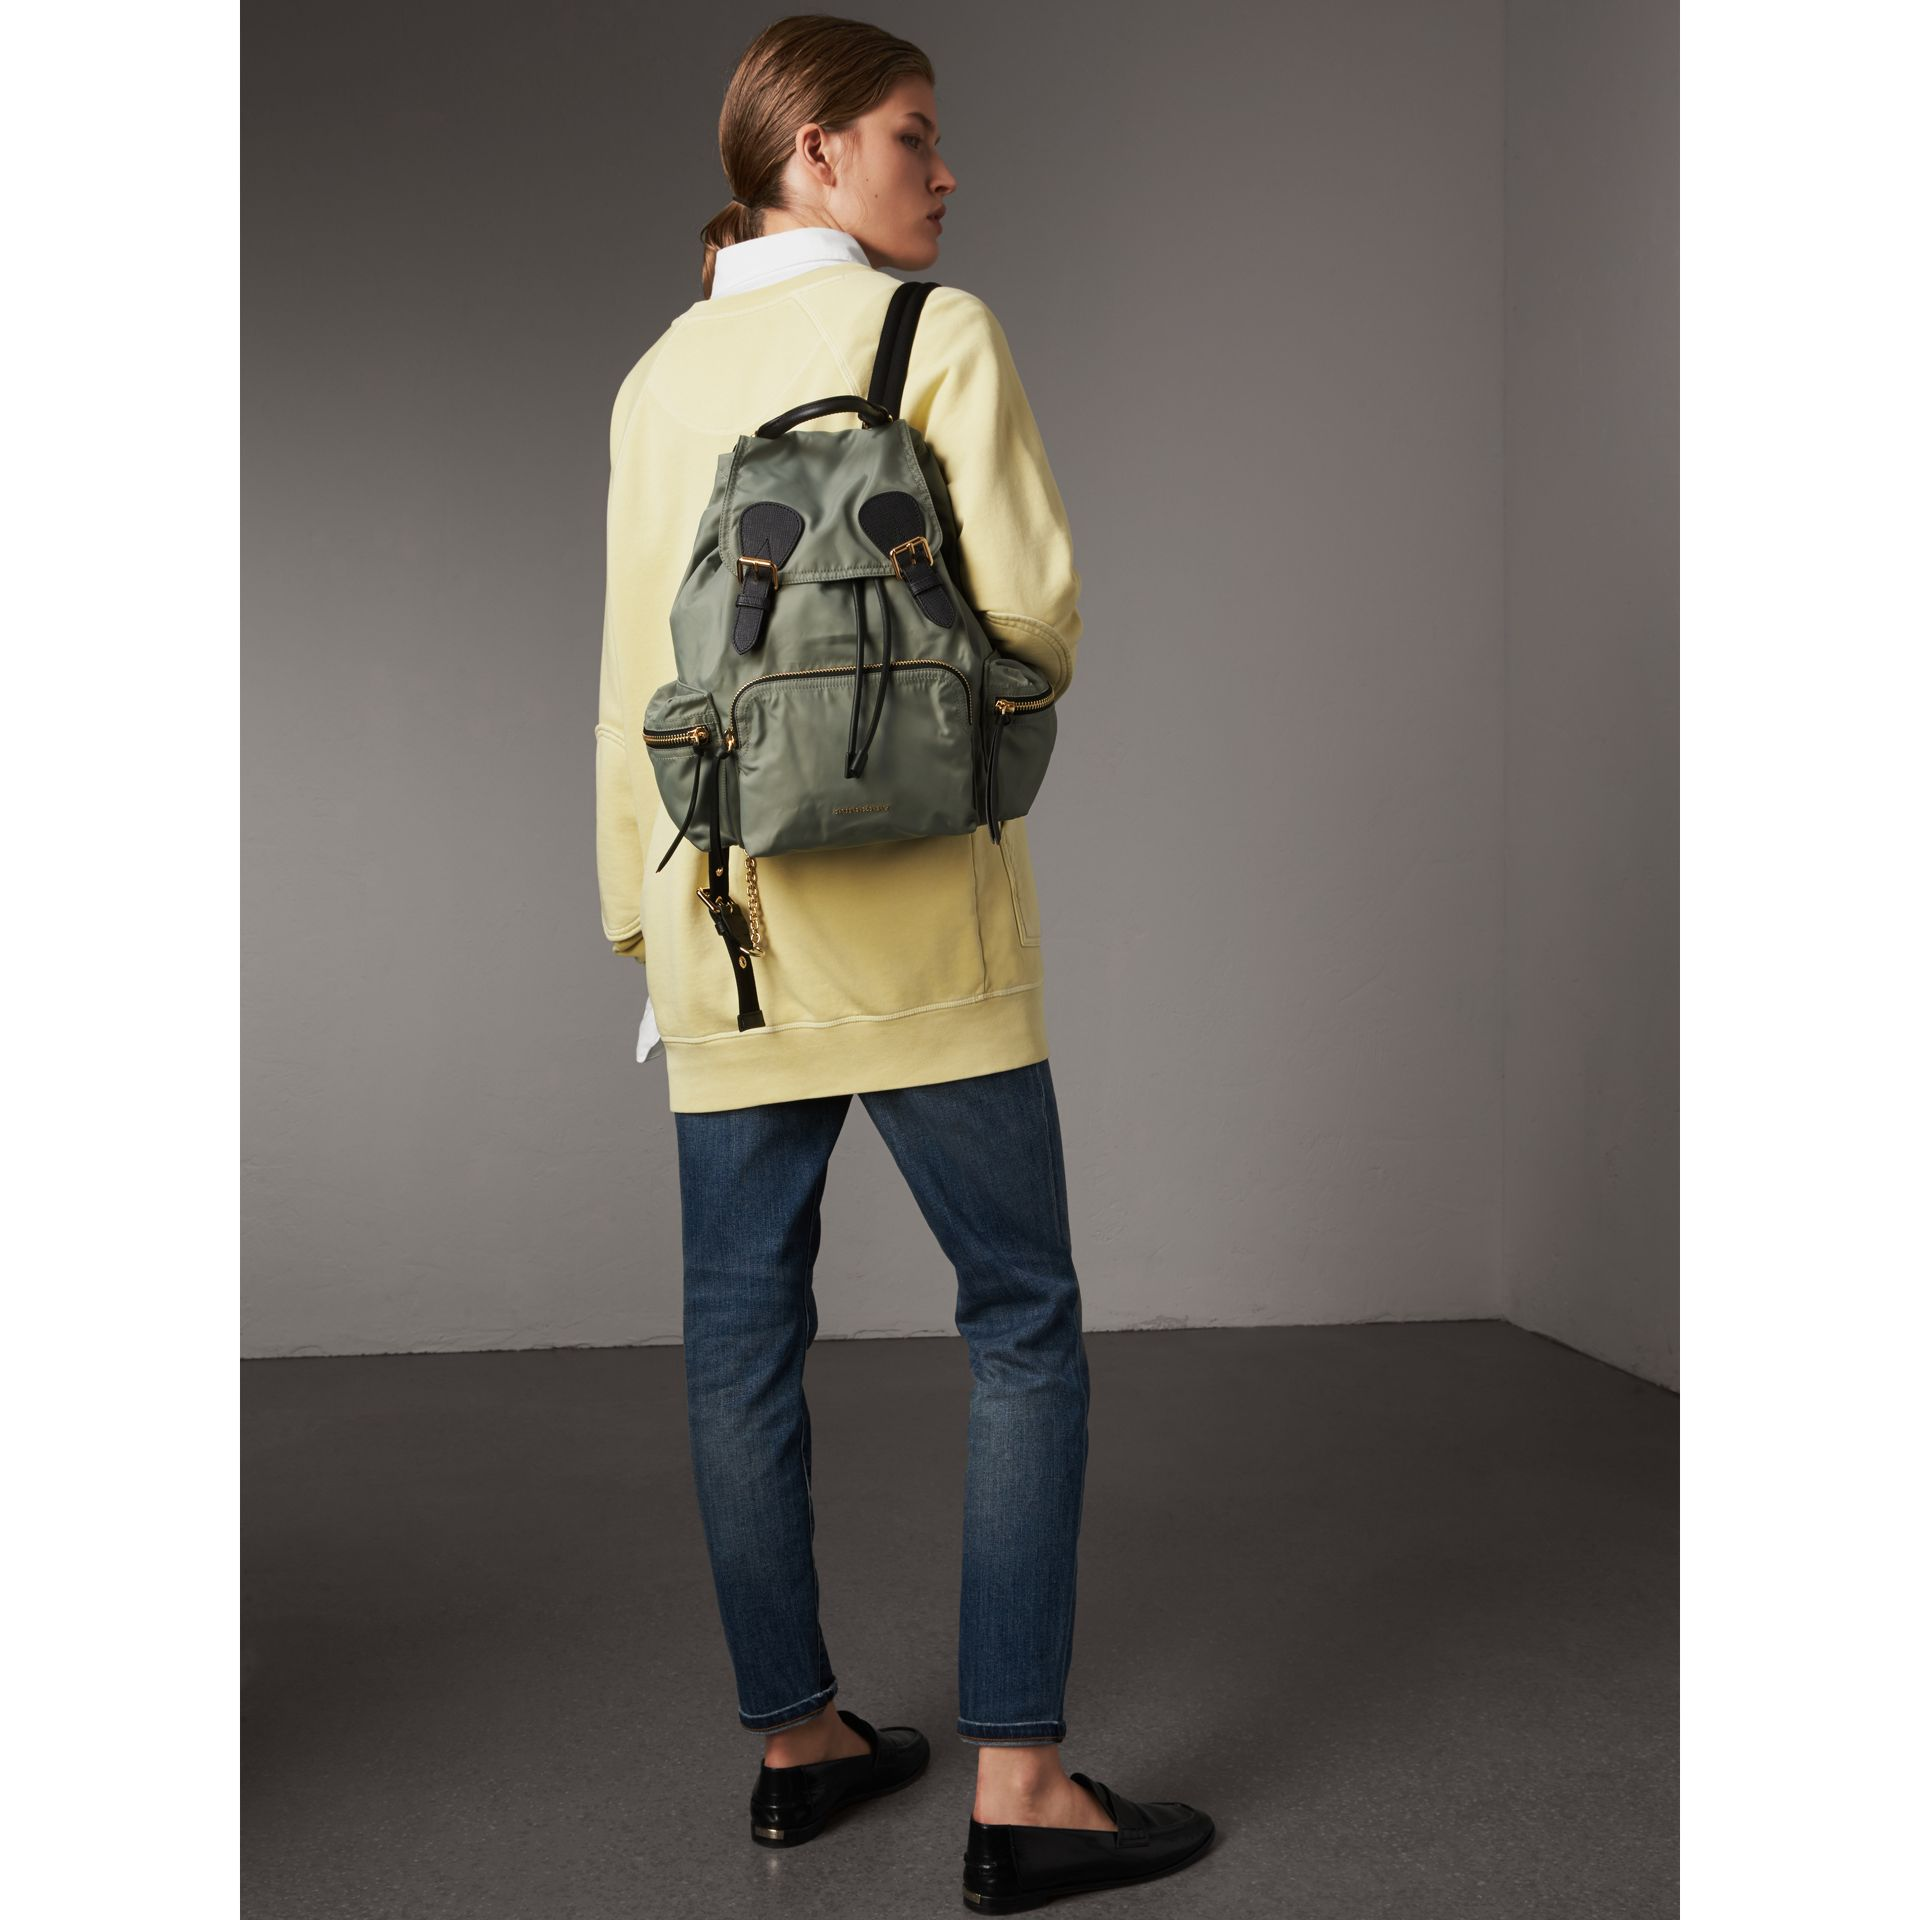 0d697fe94839 Burberry Medium Nylon And Leather Backpack- Fenix Toulouse Handball